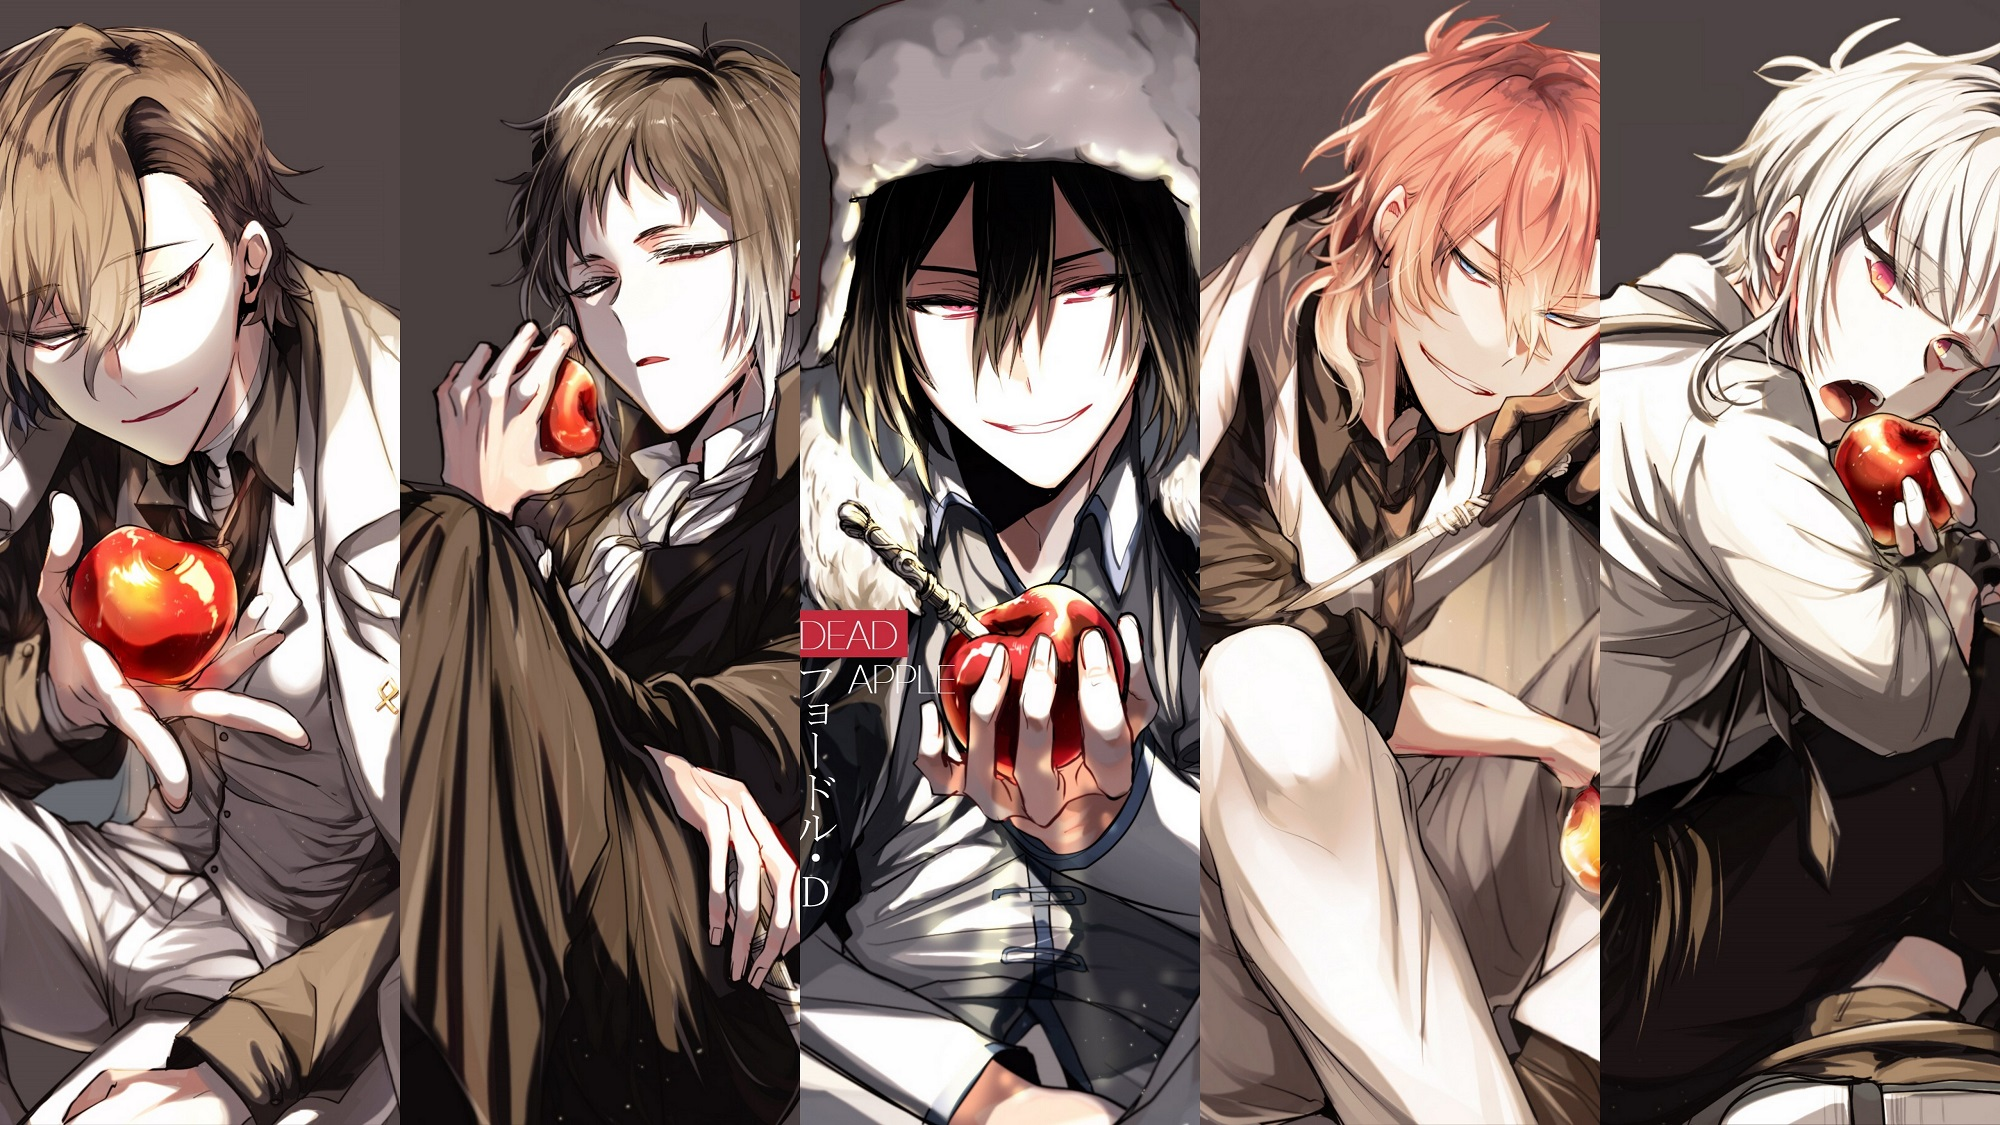 Bungou Stray Dogs Hd Wallpaper Background Image 2000x1125 Id